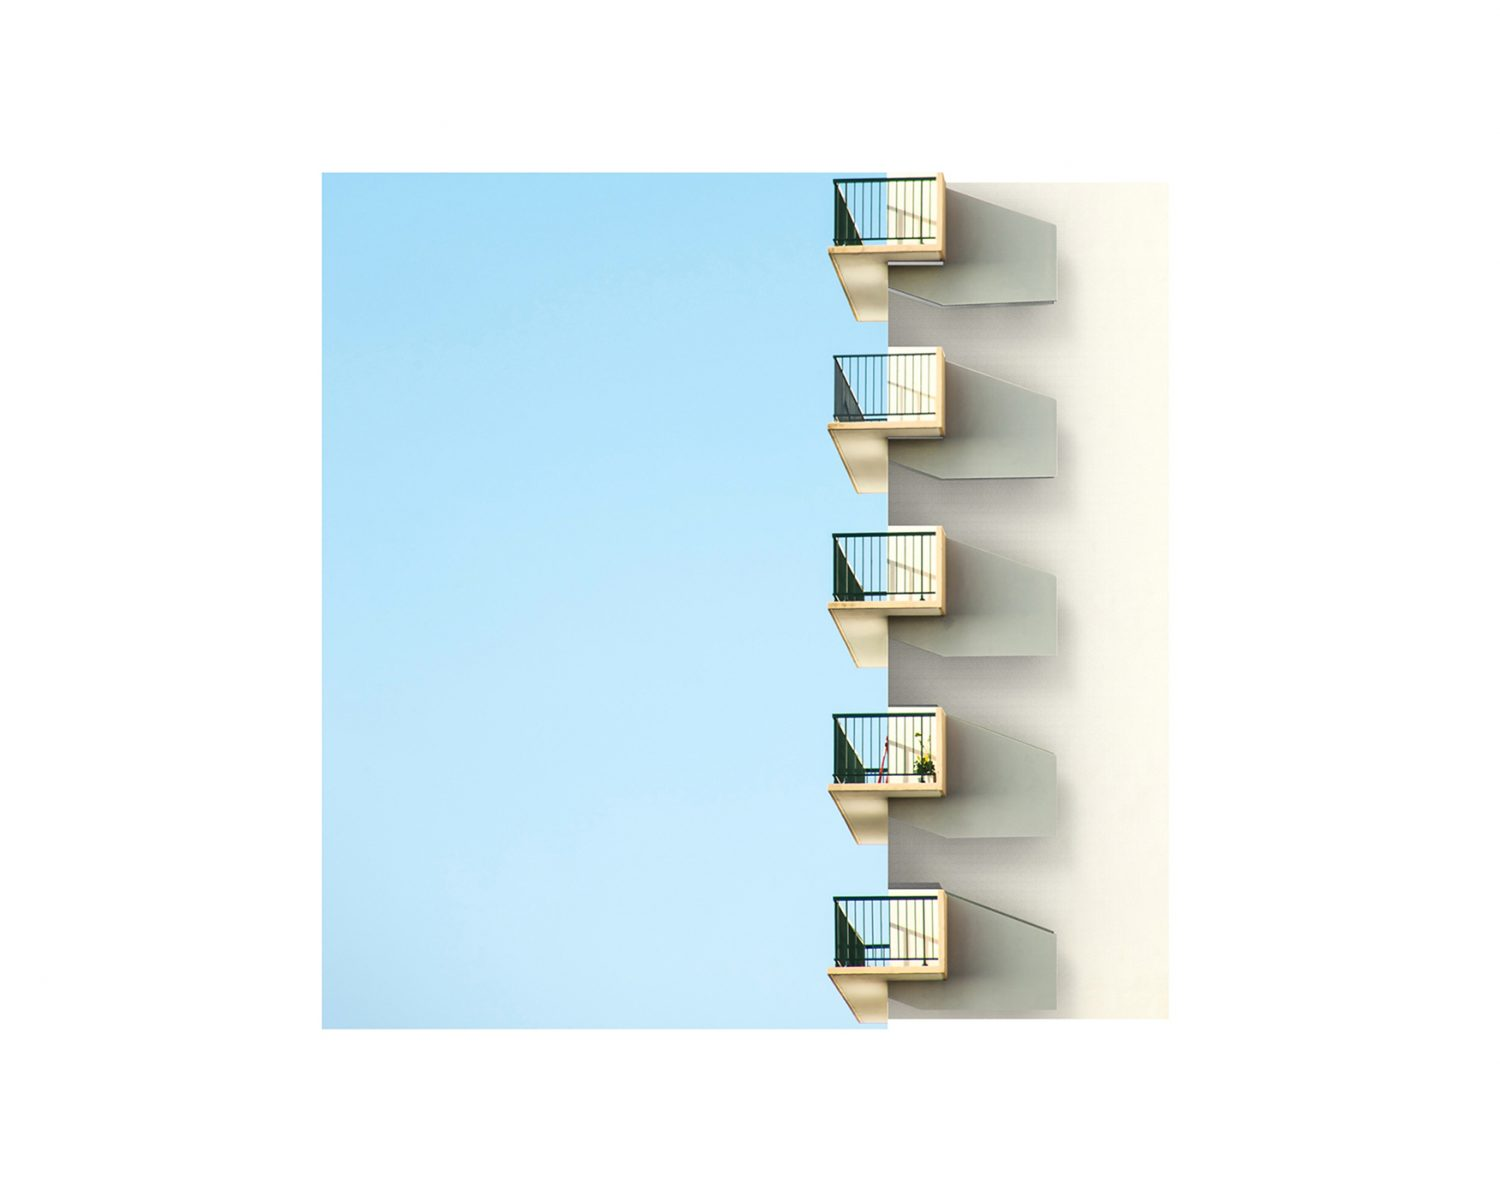 Atelier Relief / Who wants sky